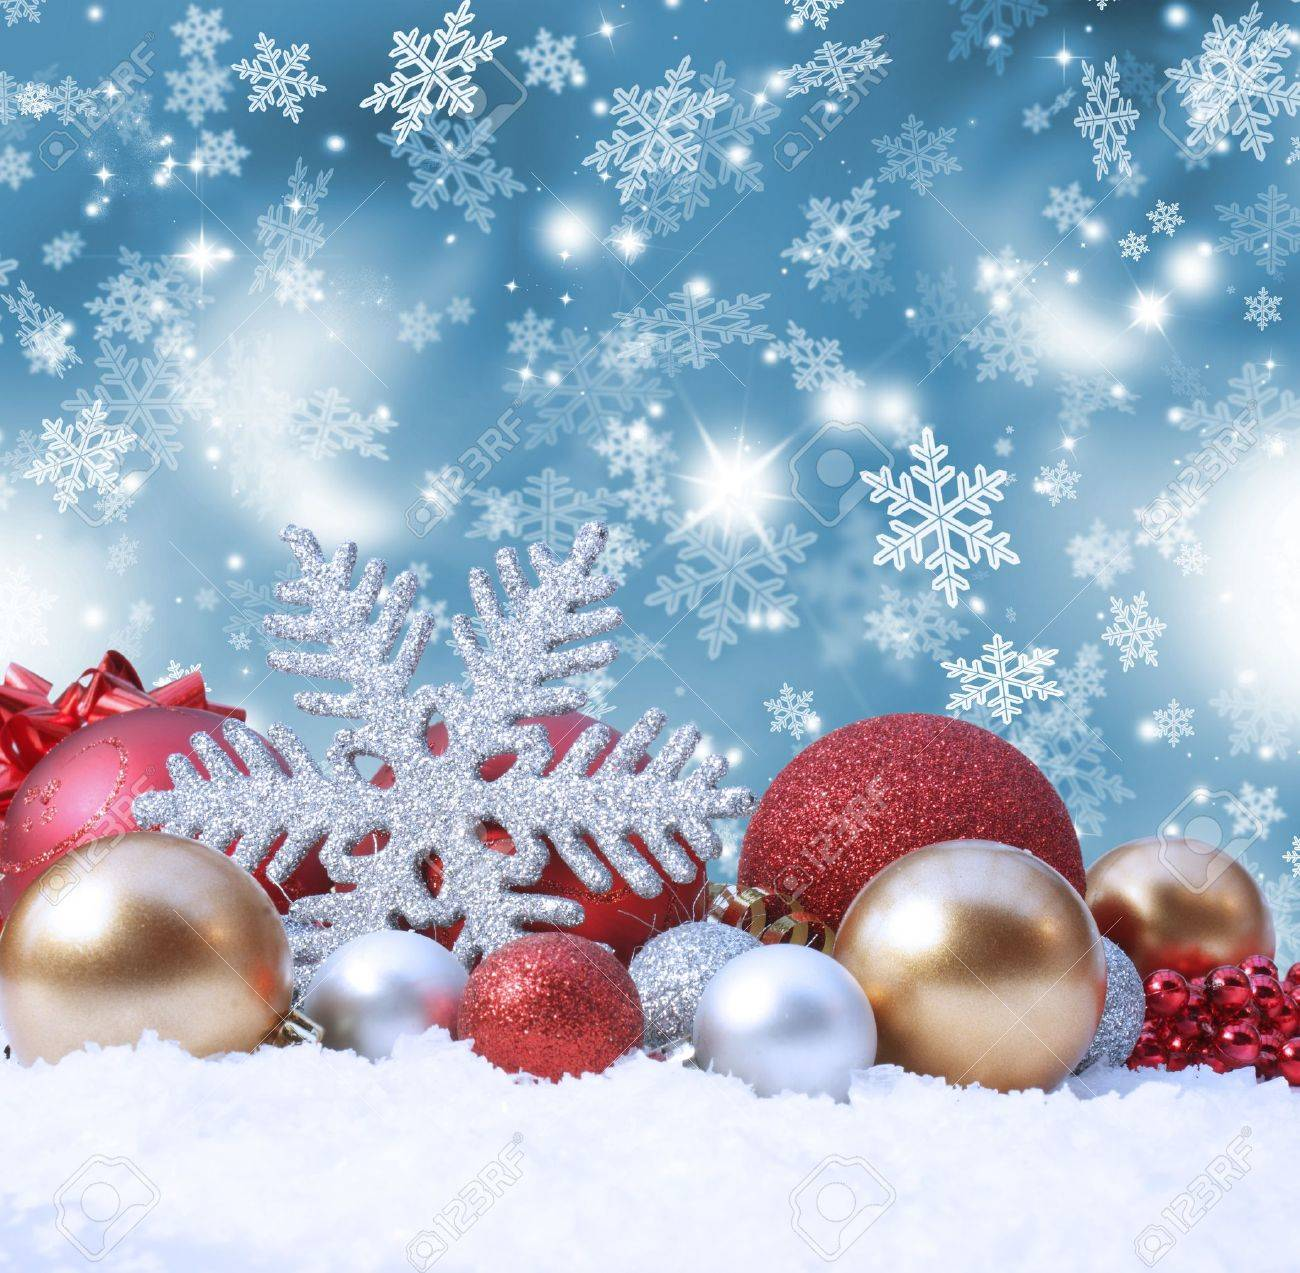 Decorative christmas background with decorations in snow Stock Photo - 8468581